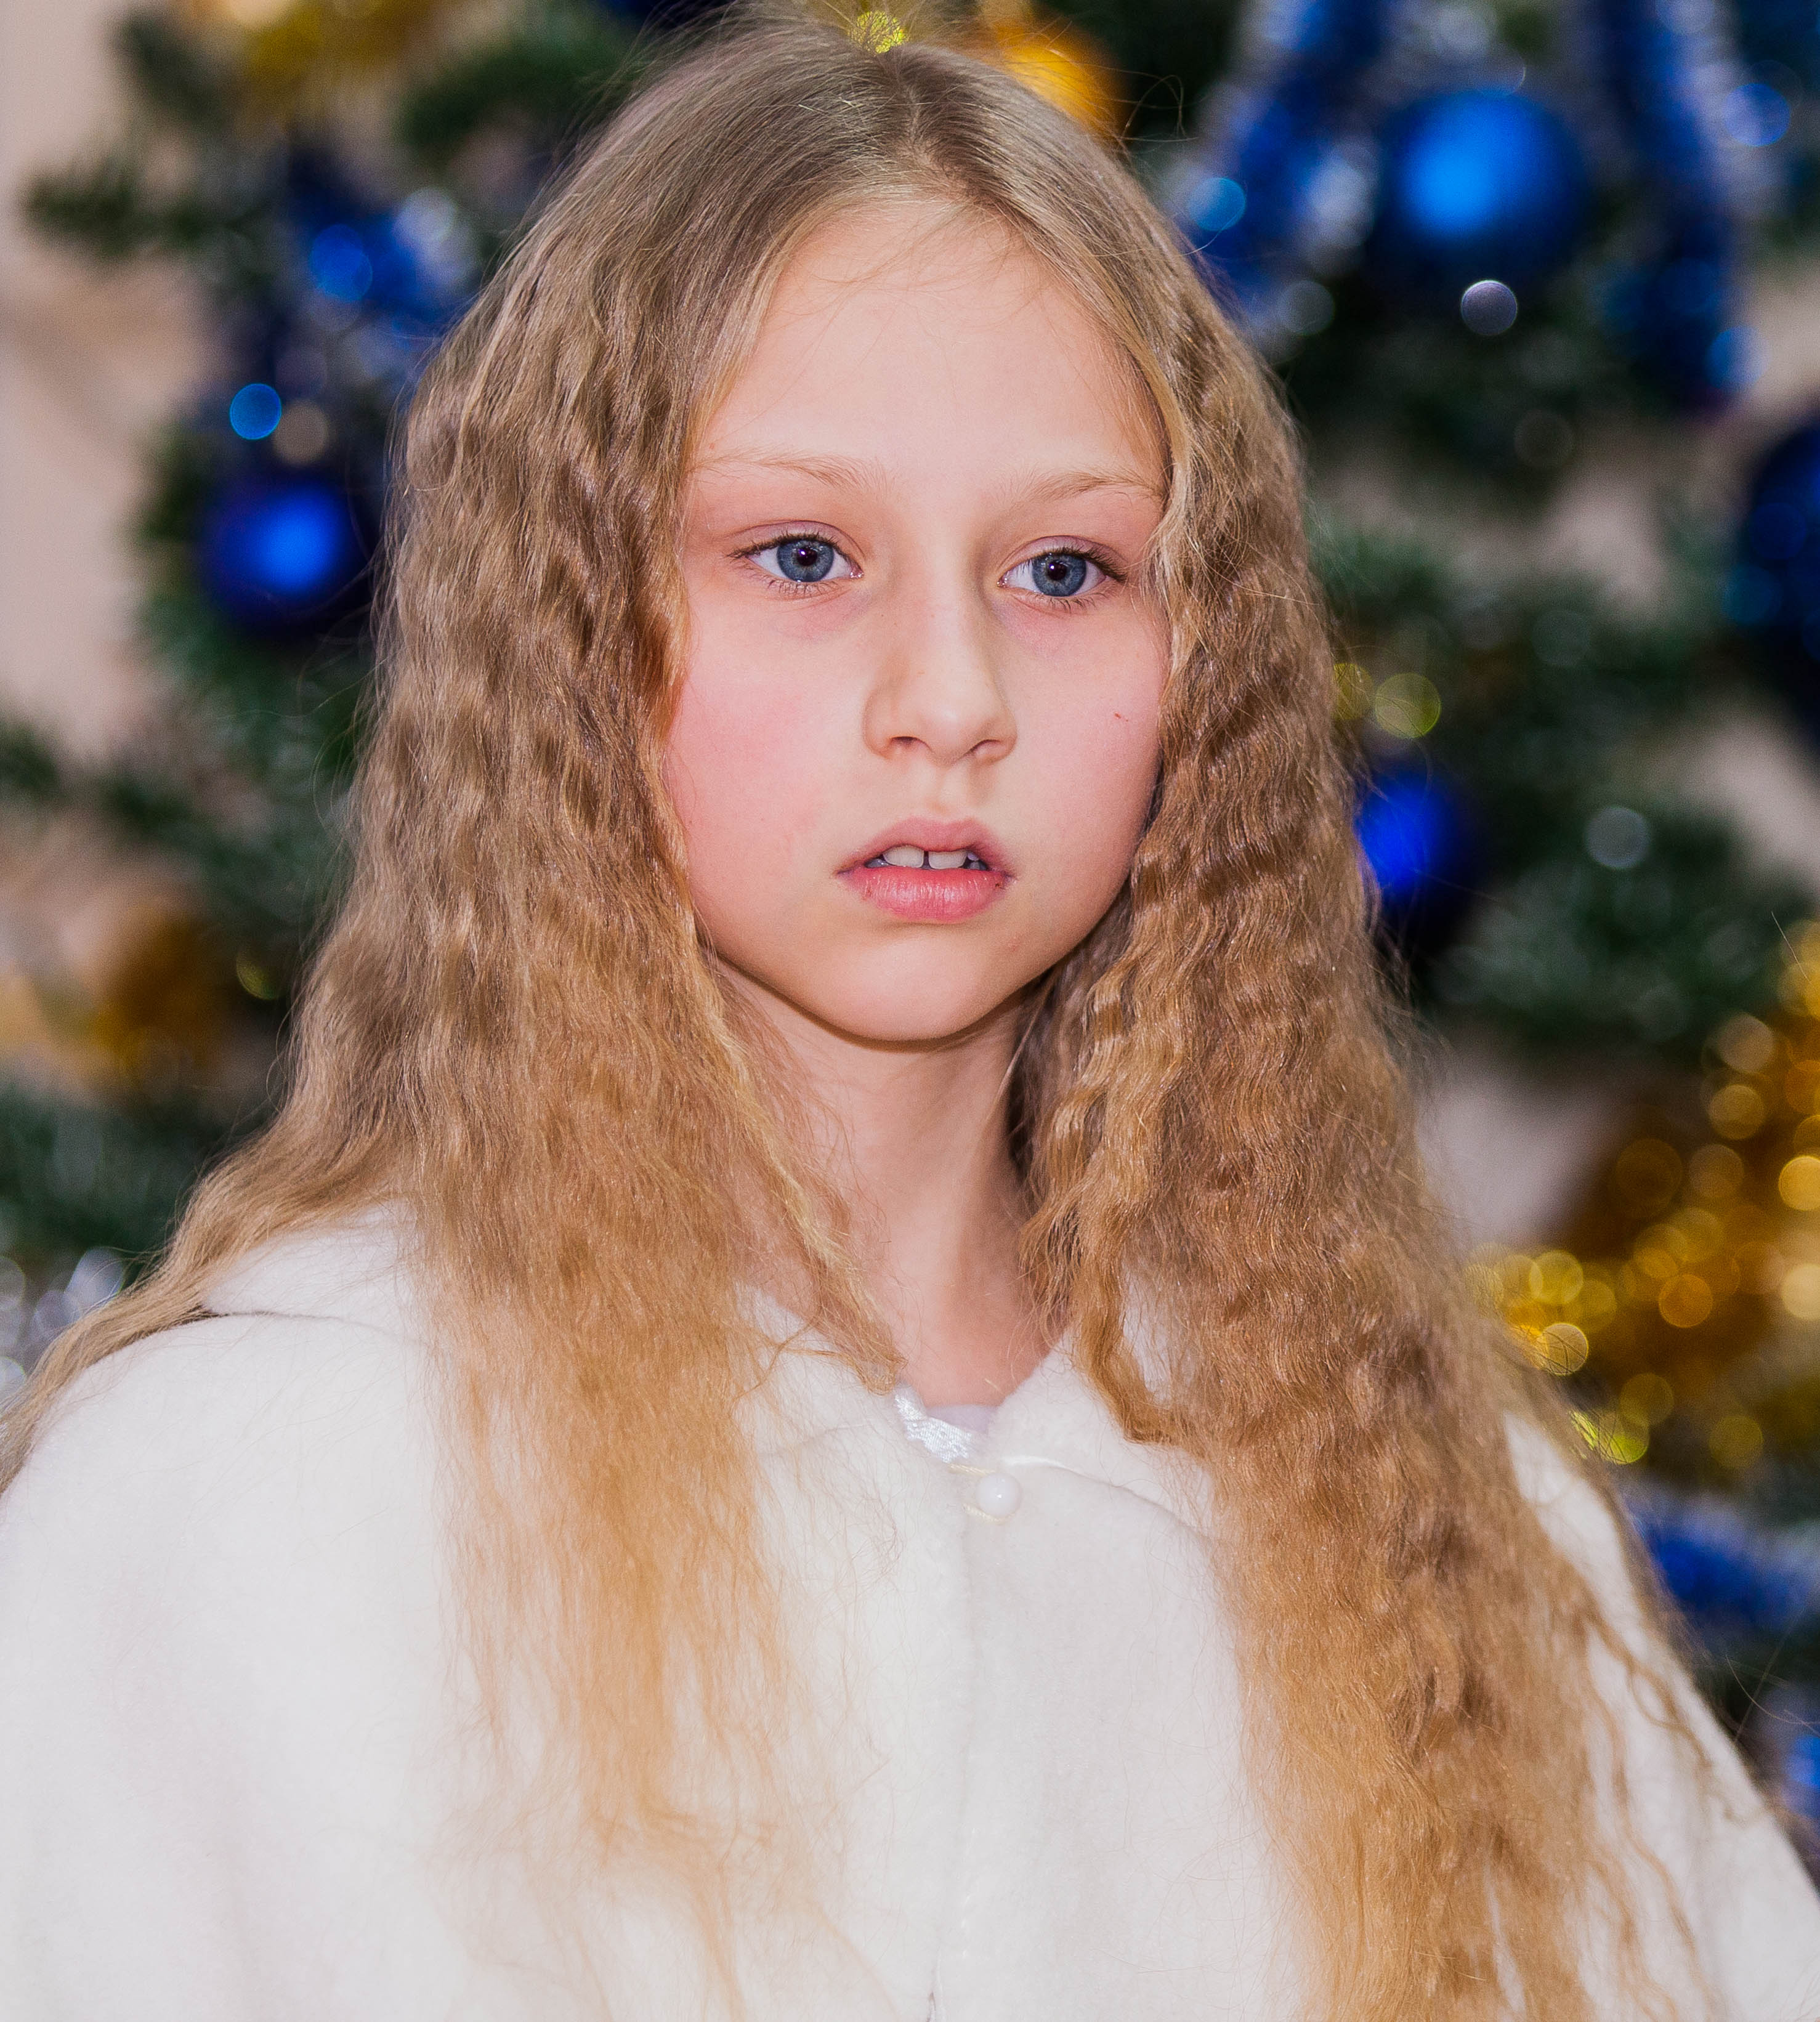 a young blond pretty schoolgirl photographed in December 2013, picture 1/6